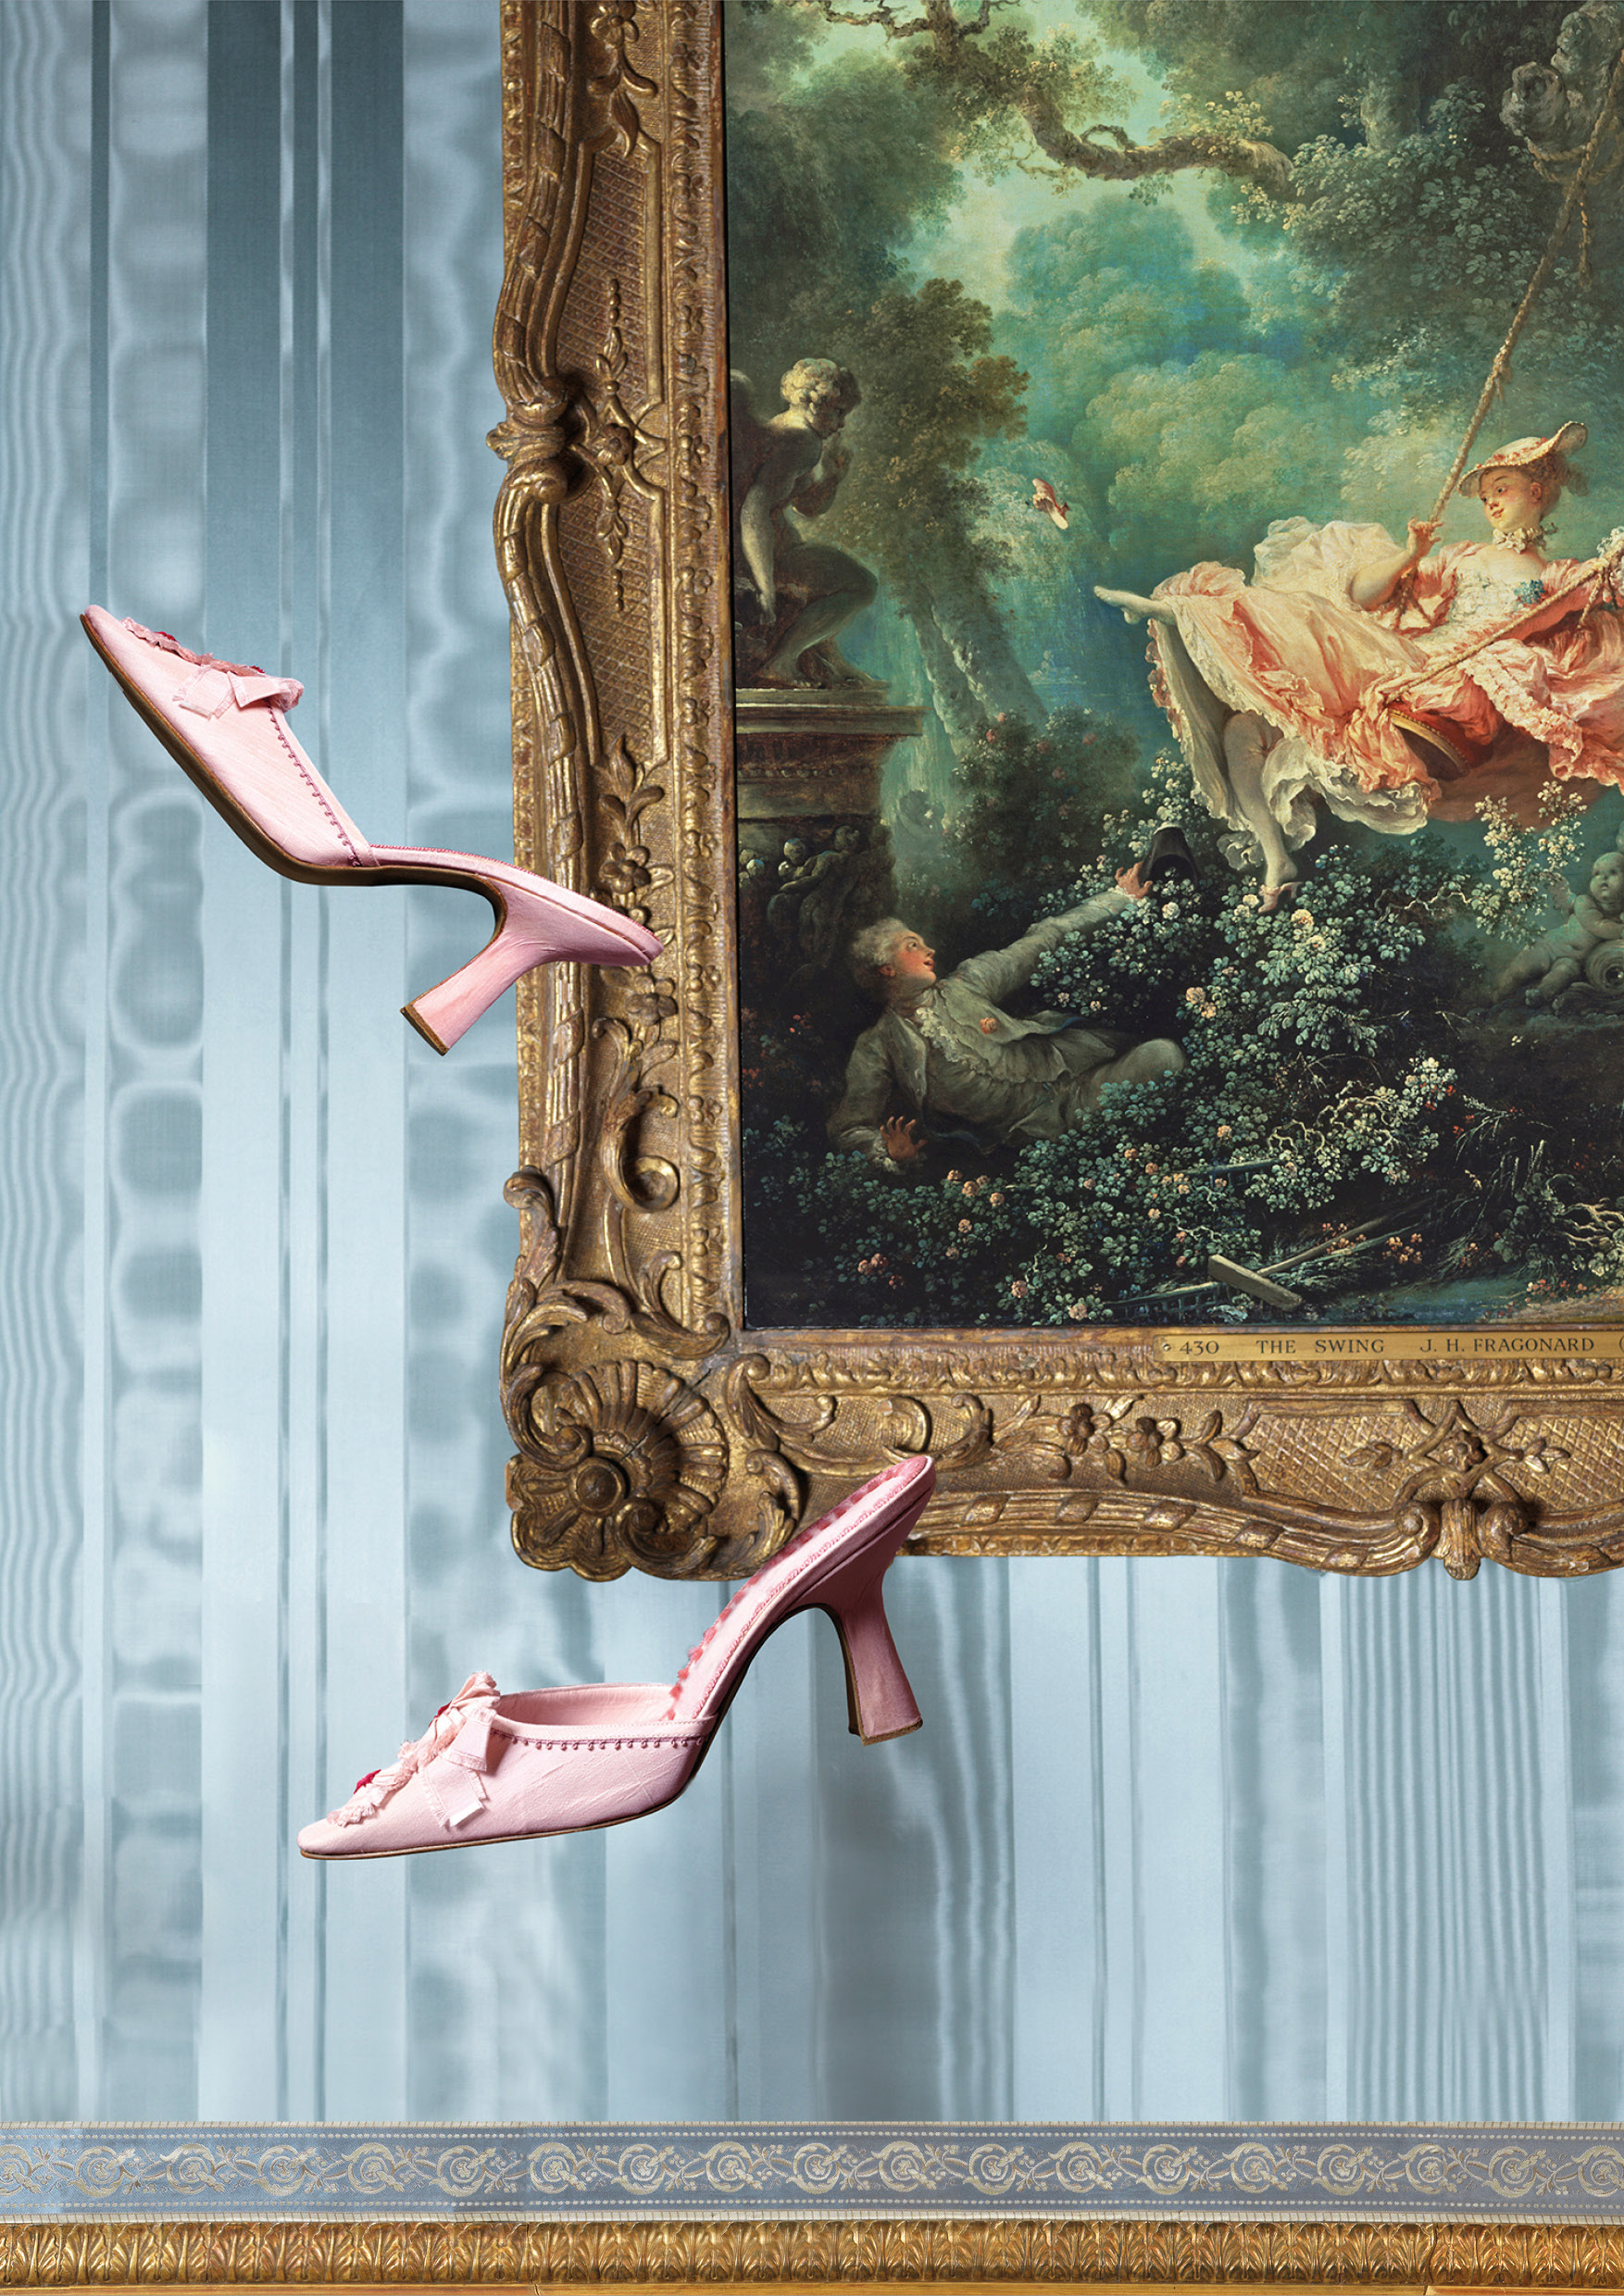 The exhibition showcases more than 150 of Manolo Blahnik's exquisite designs alongside artworks including Jean-Honoré Fragonard's 1767 iconic The Swing painting| An Enquiring Mind: Manolo Blahnik| The Wallace Collection| STIR